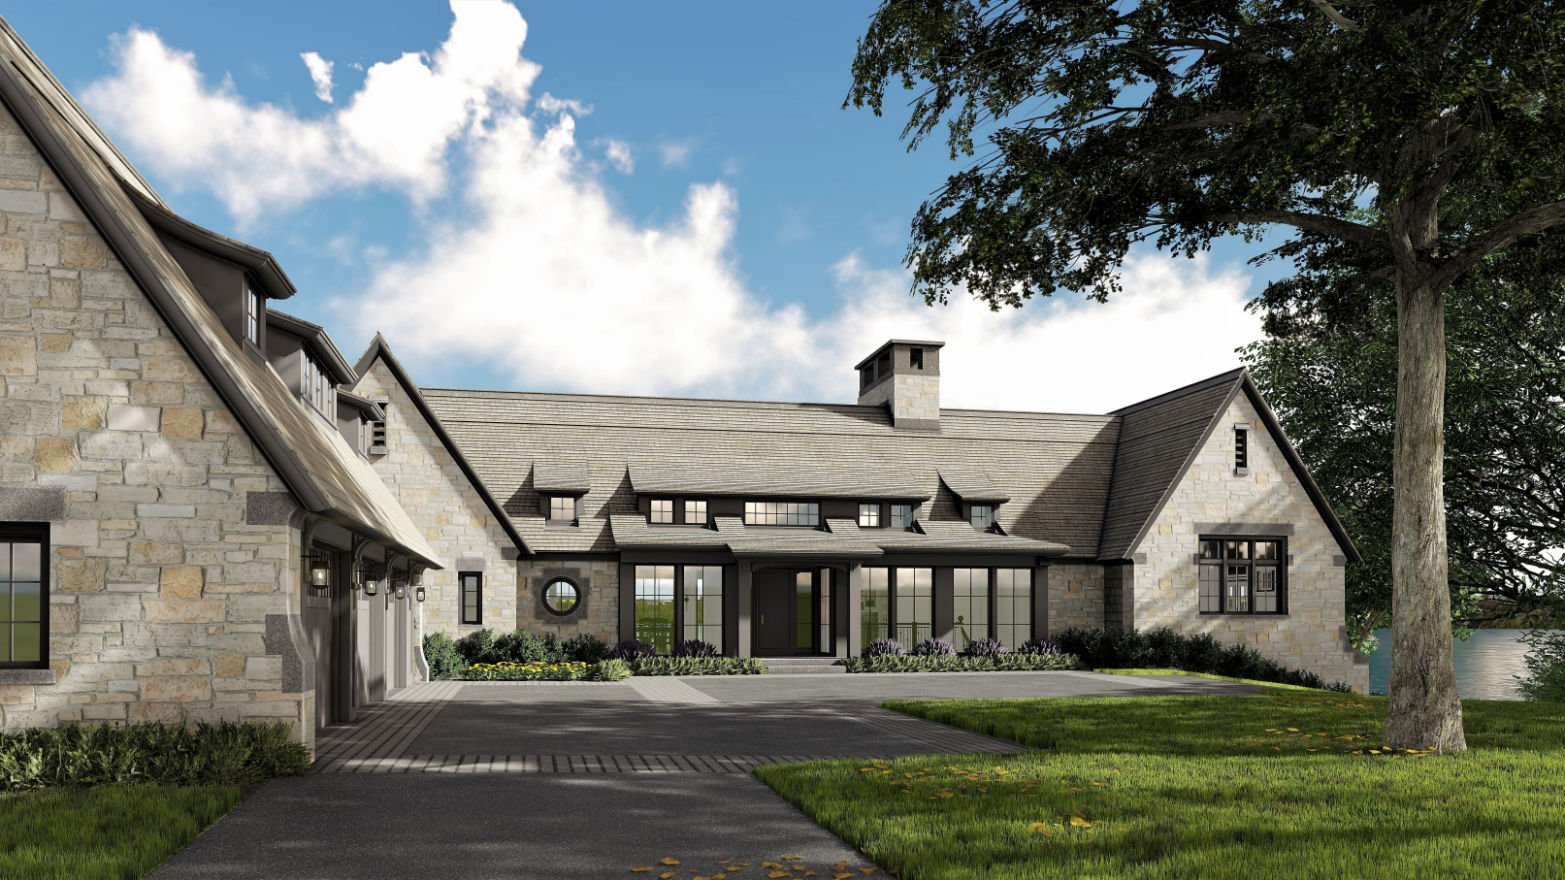 Lakeside Cottage rendering by Colby Mattson